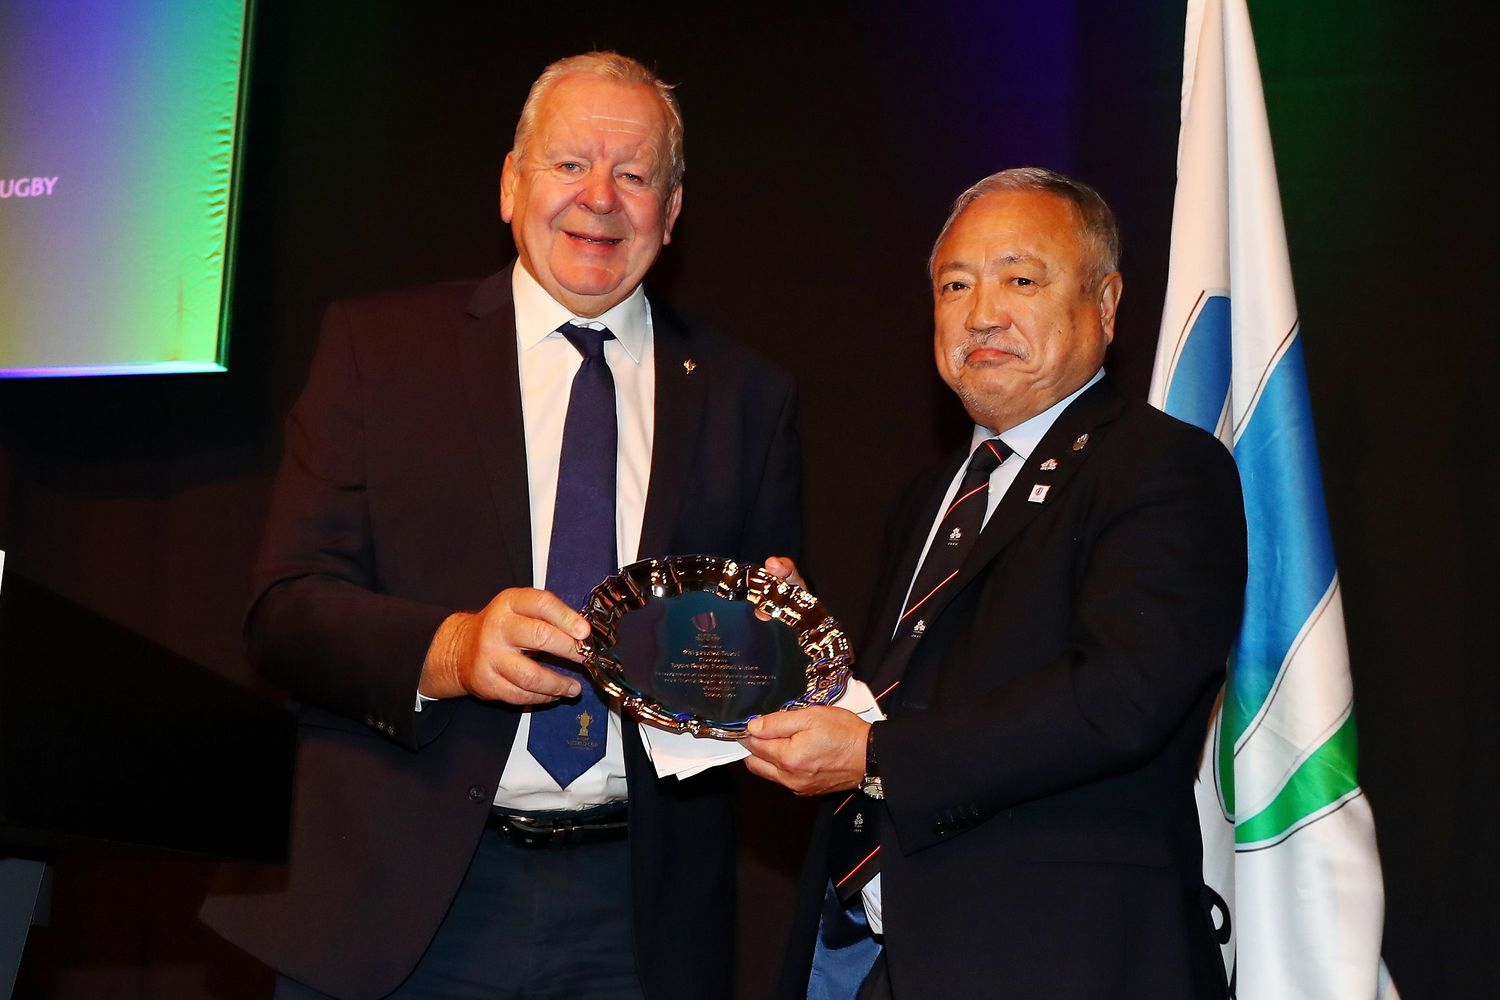 14th World Rugby General Assemby